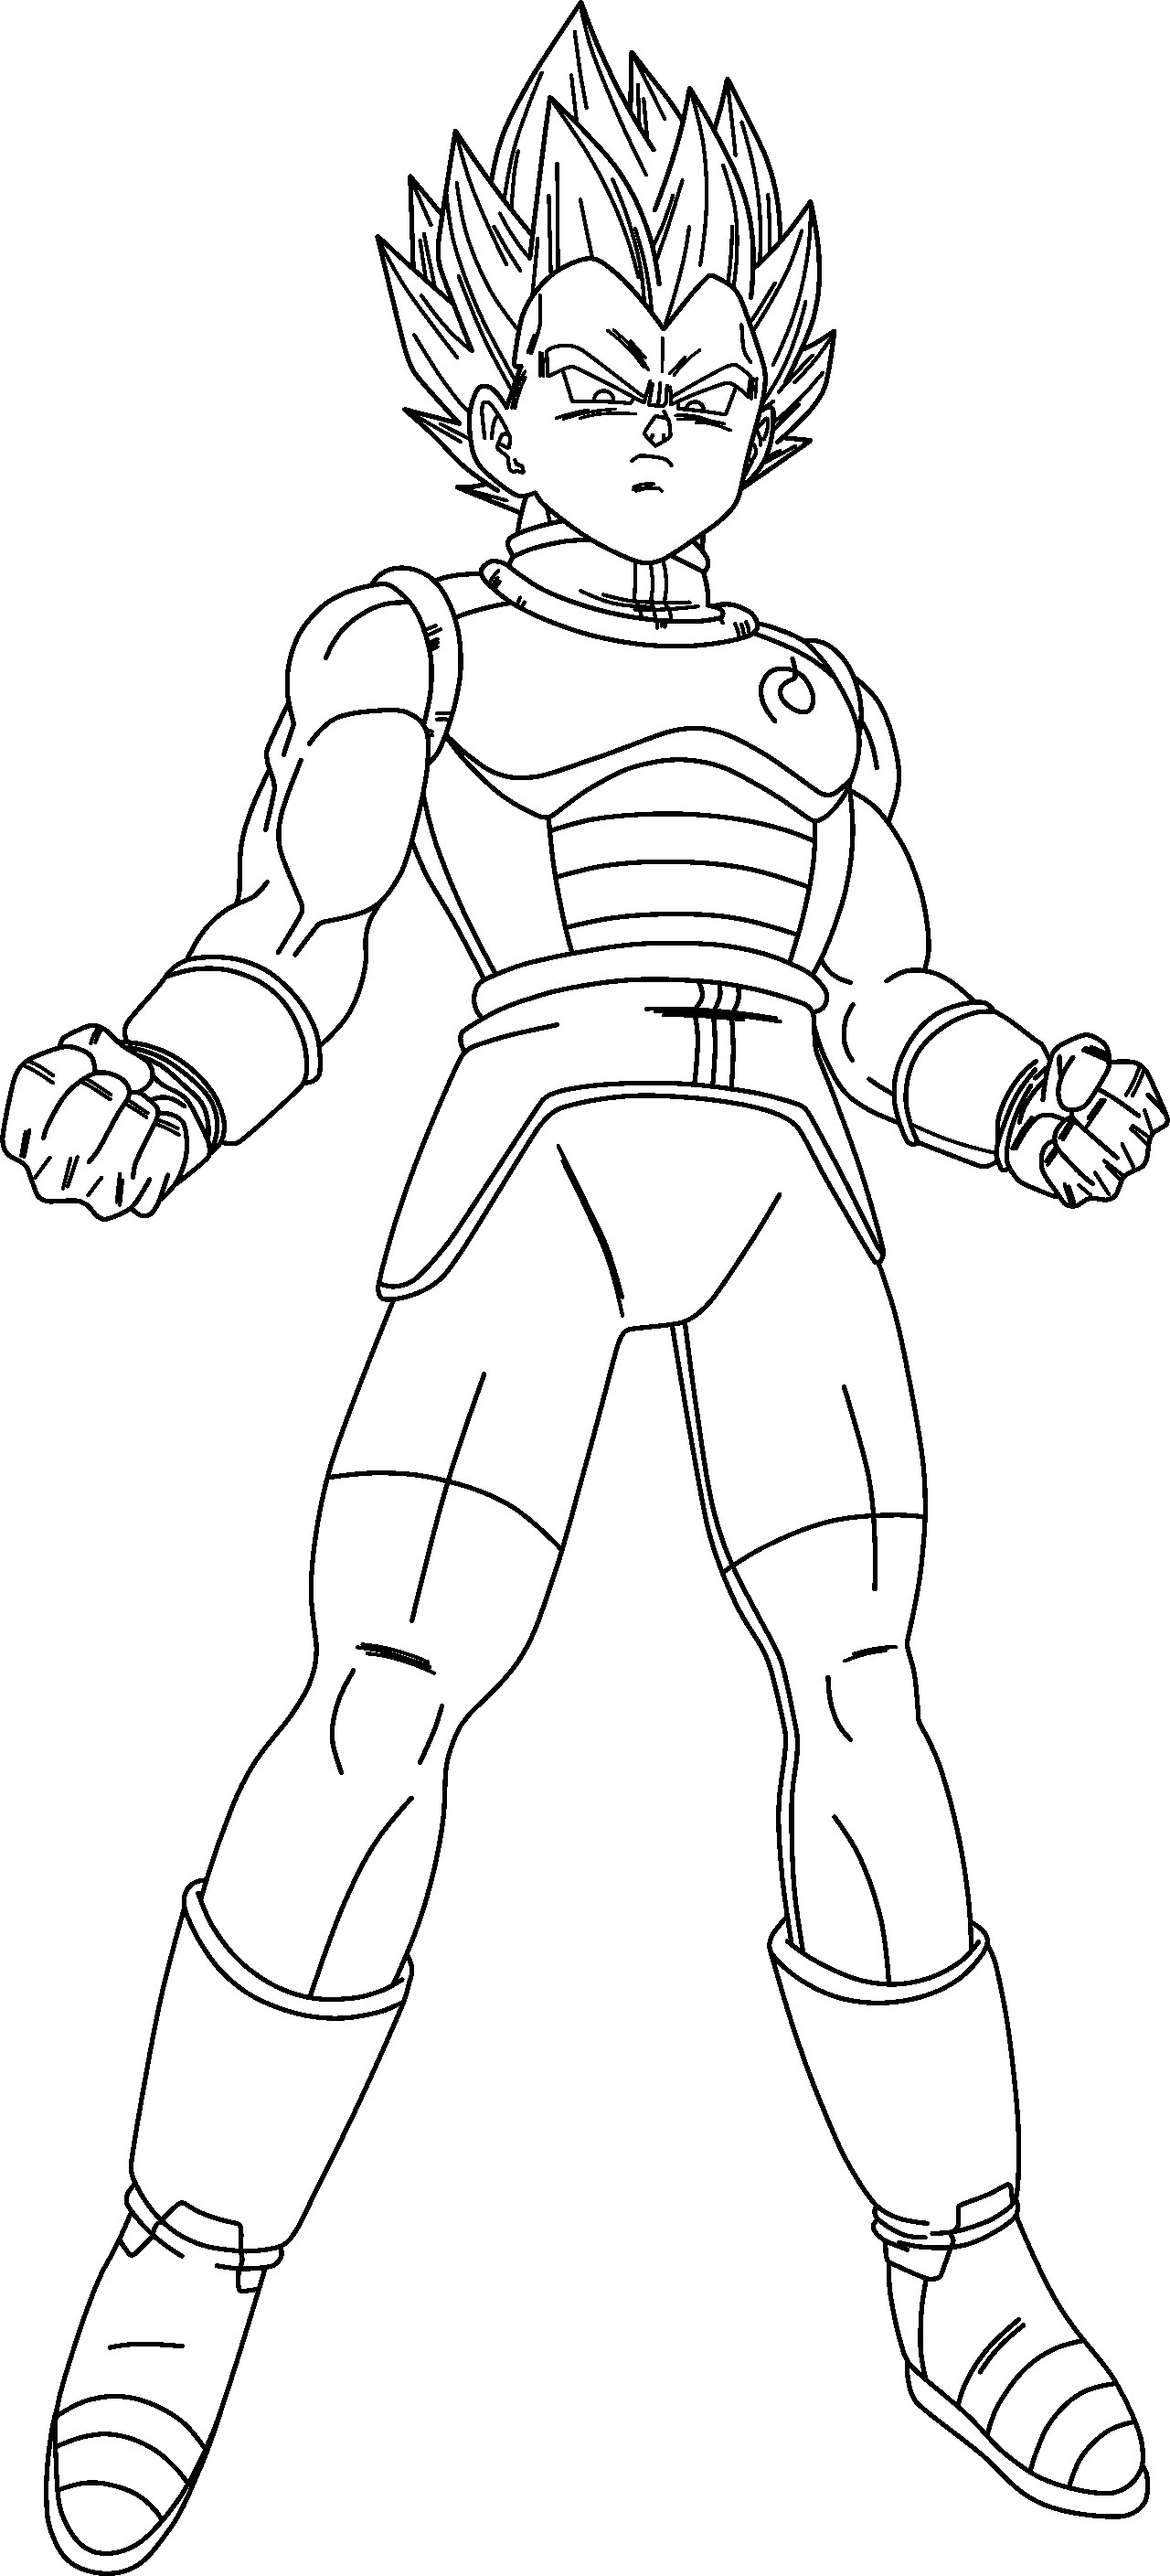 coloring pictures of goku son goku dragon ball z coloring page free dragon ball z pictures goku of coloring